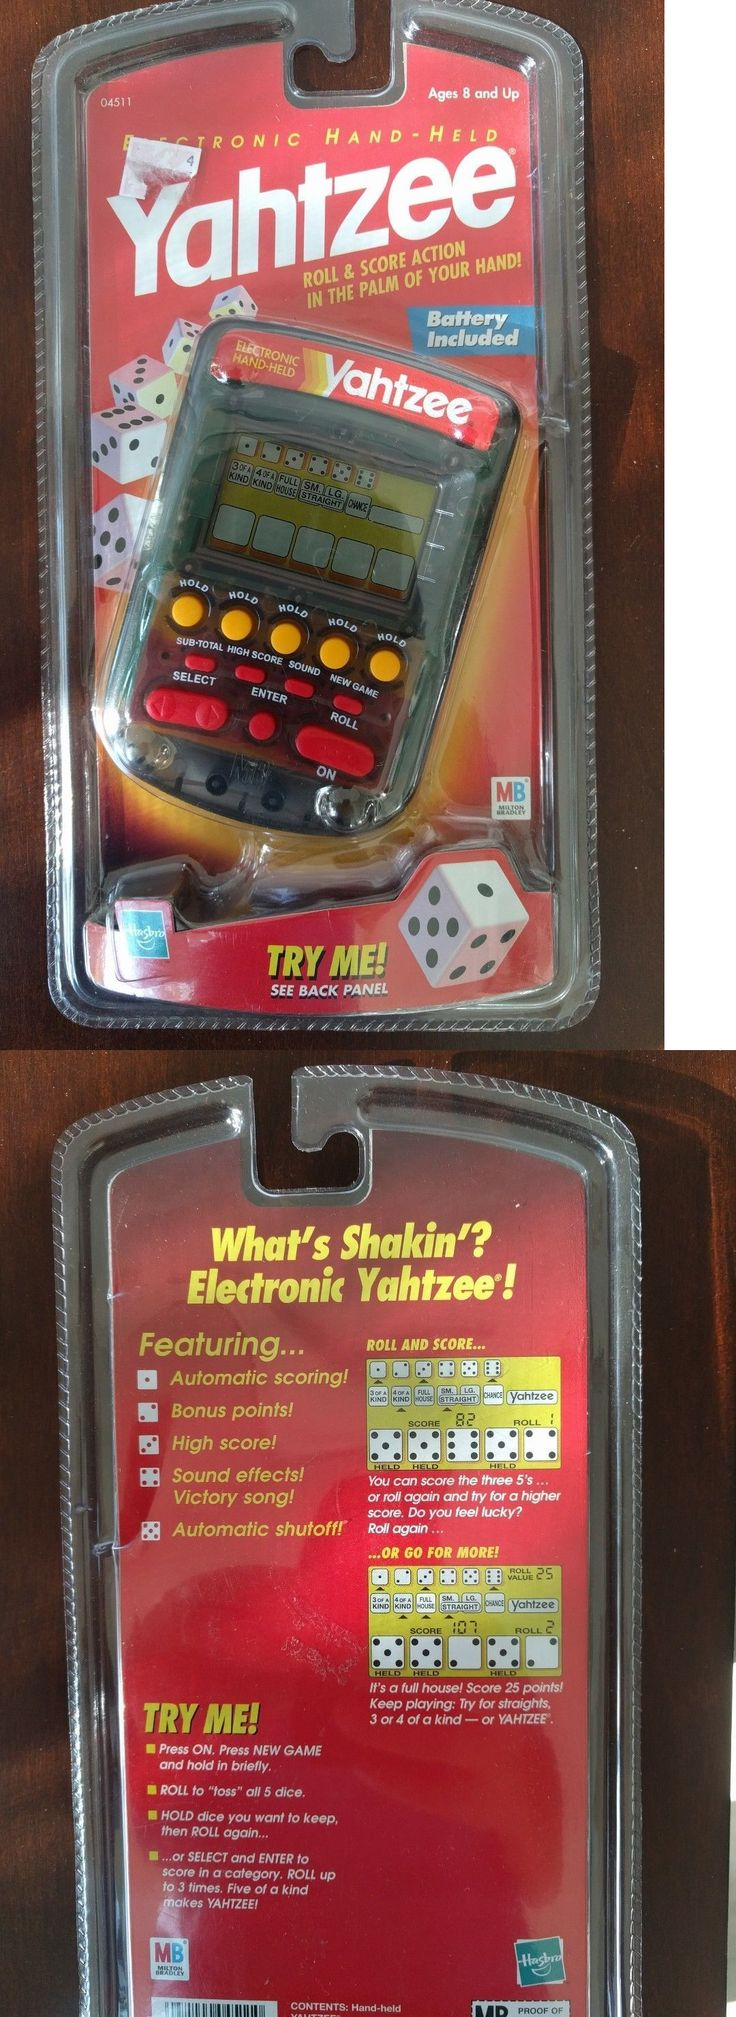 Electronic Games 2540: New *Rare* Electronic Handheld Yahtzee Game 1999 Clear Milton Bradley Hasbro -> BUY IT NOW ONLY: $38.95 on eBay!